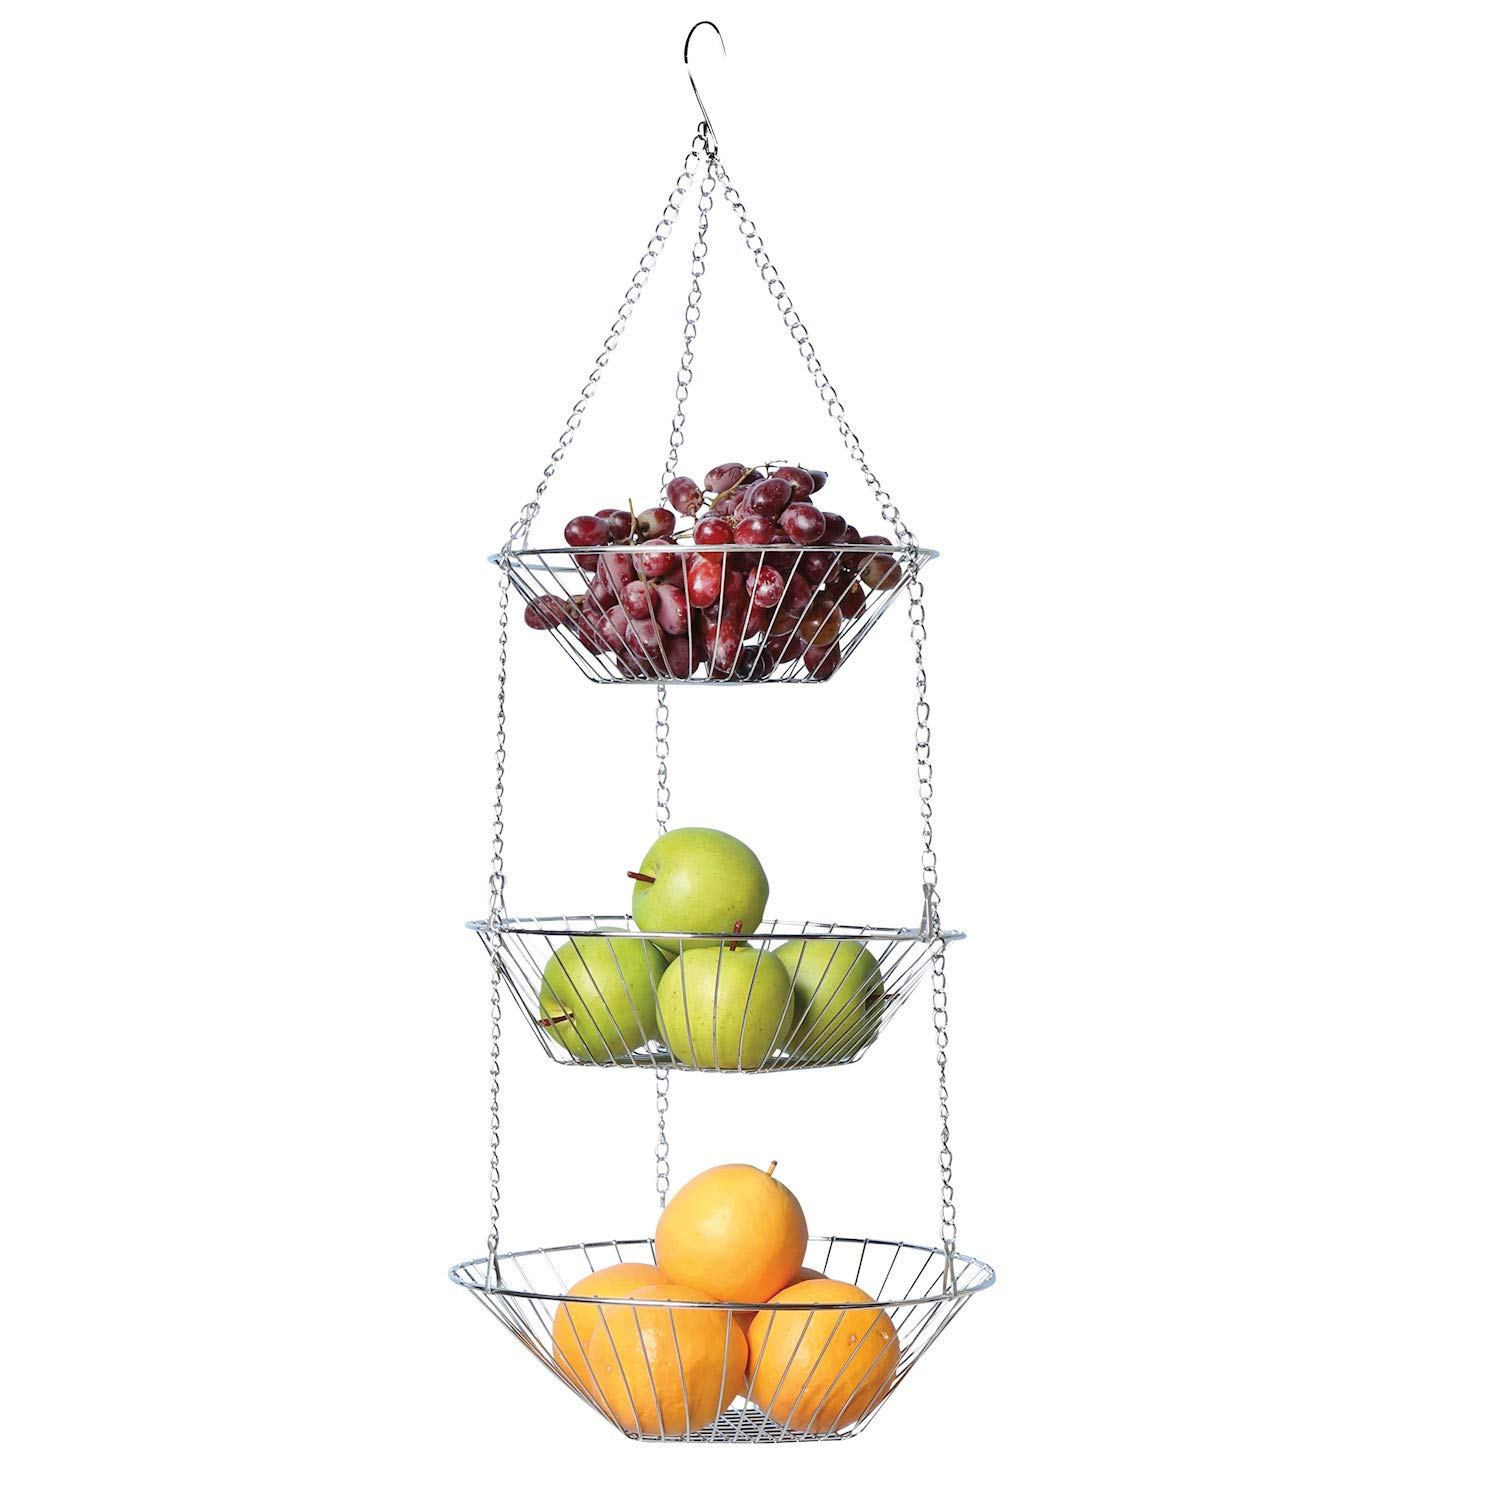 Home District 3-Tier Chrome Hanging Fruit Basket - Wire Food Storage Bowls